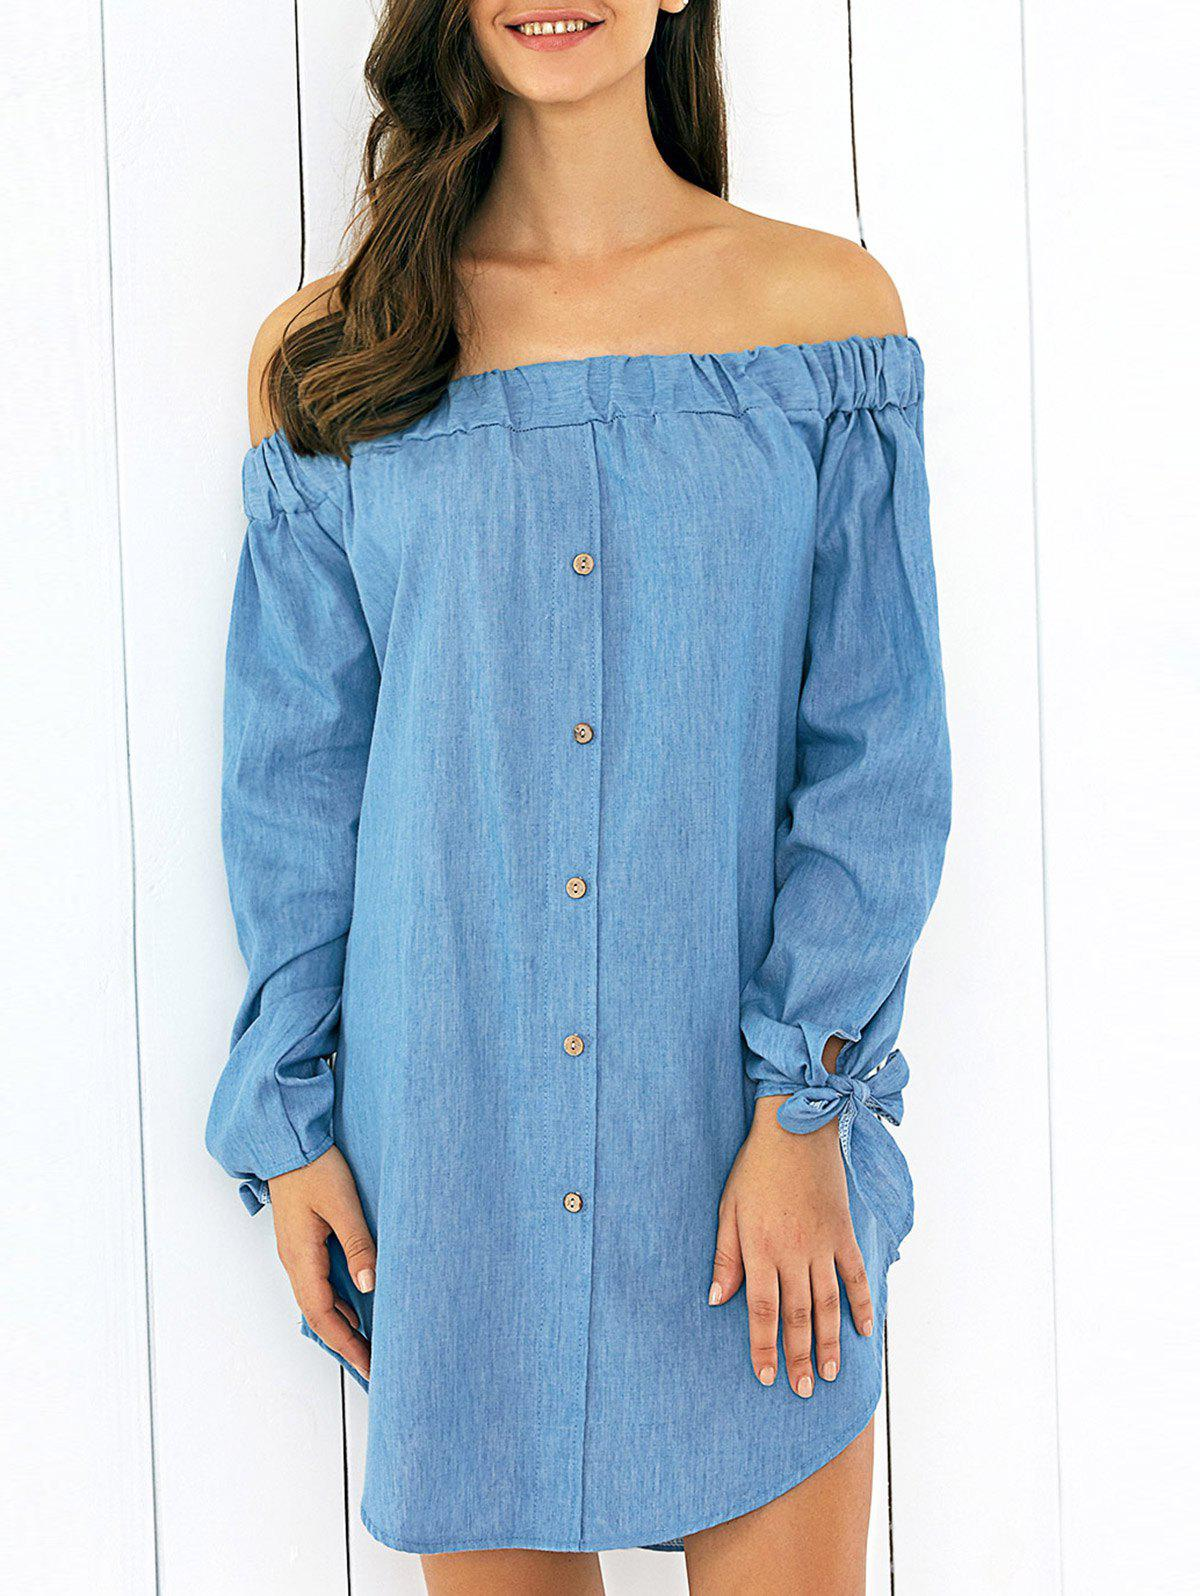 Off-The-Shoulder Tie Sleeve Dress - LIGHT BLUE XL